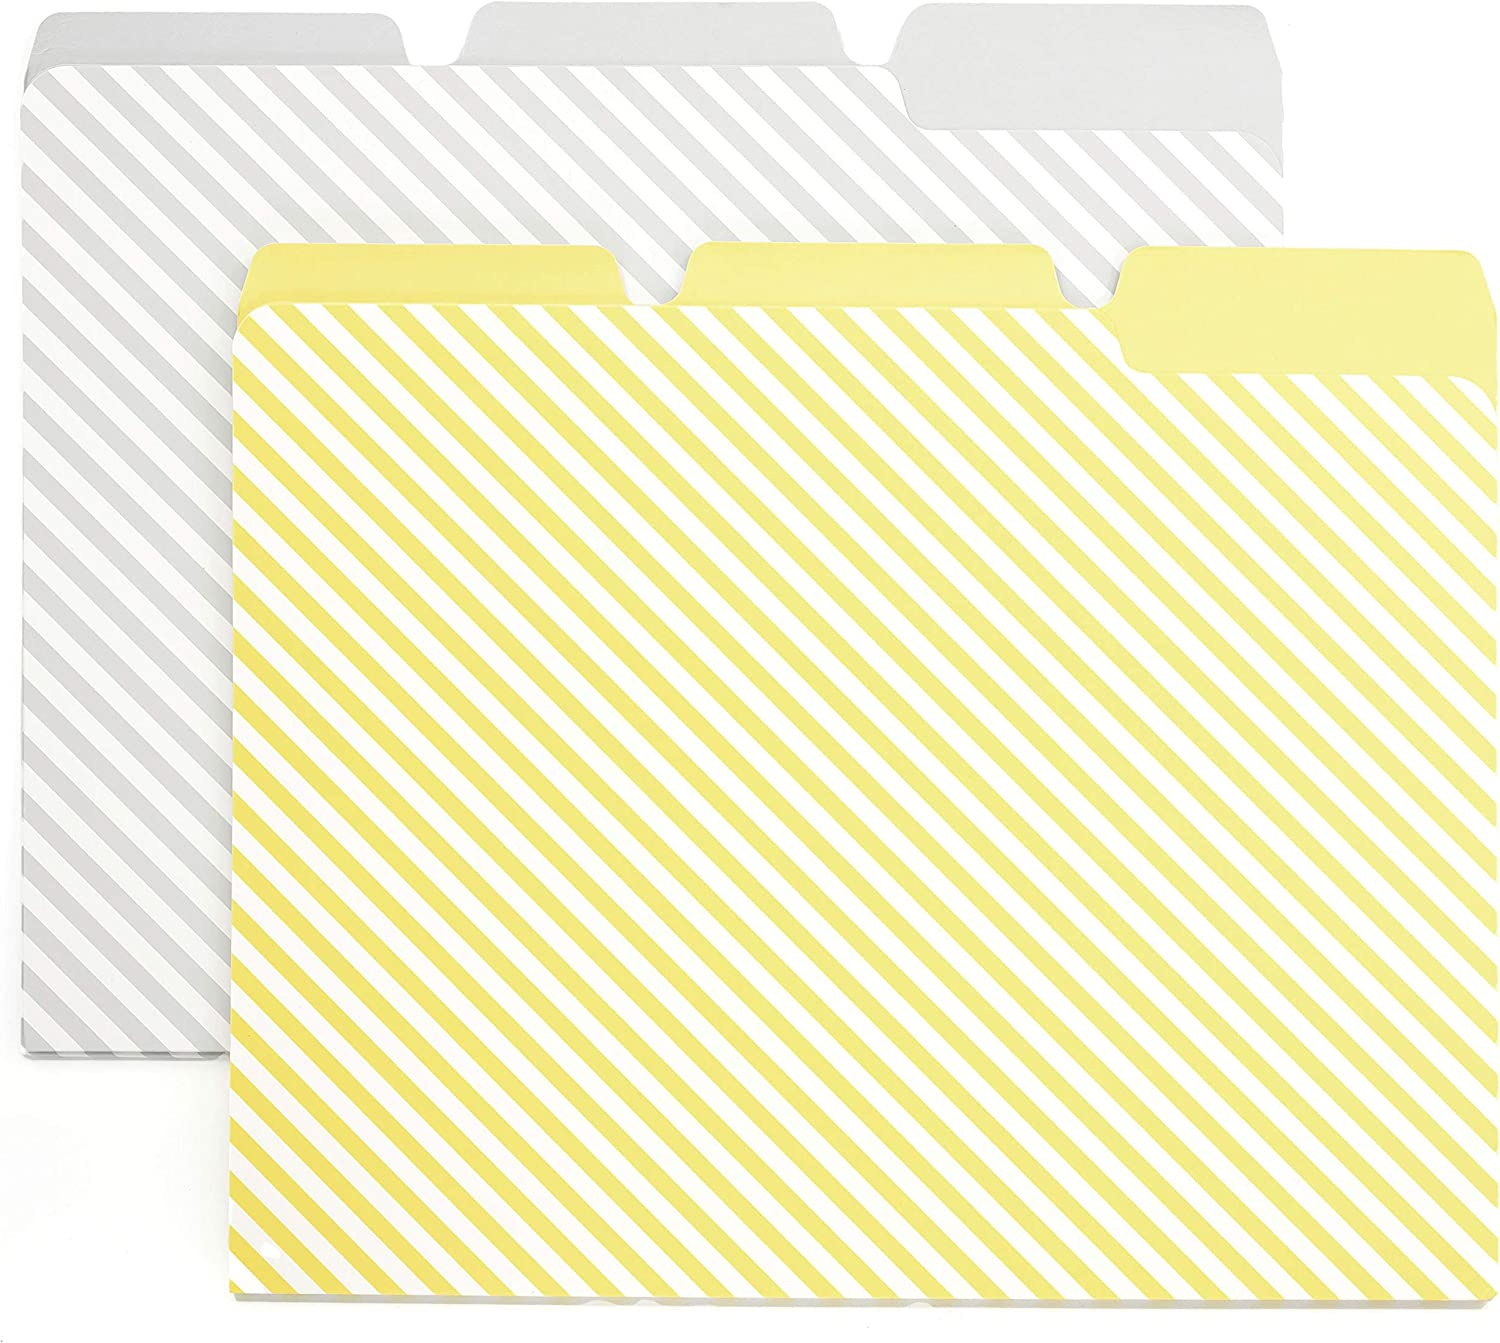 6 Pack File Folders - Grey and Yellow Diagonal Stripe - with Tabs, fits Letter Size Paper, Folder Size 9.5 in by 11.75 in - Standard Size - Office, Home and School Organization